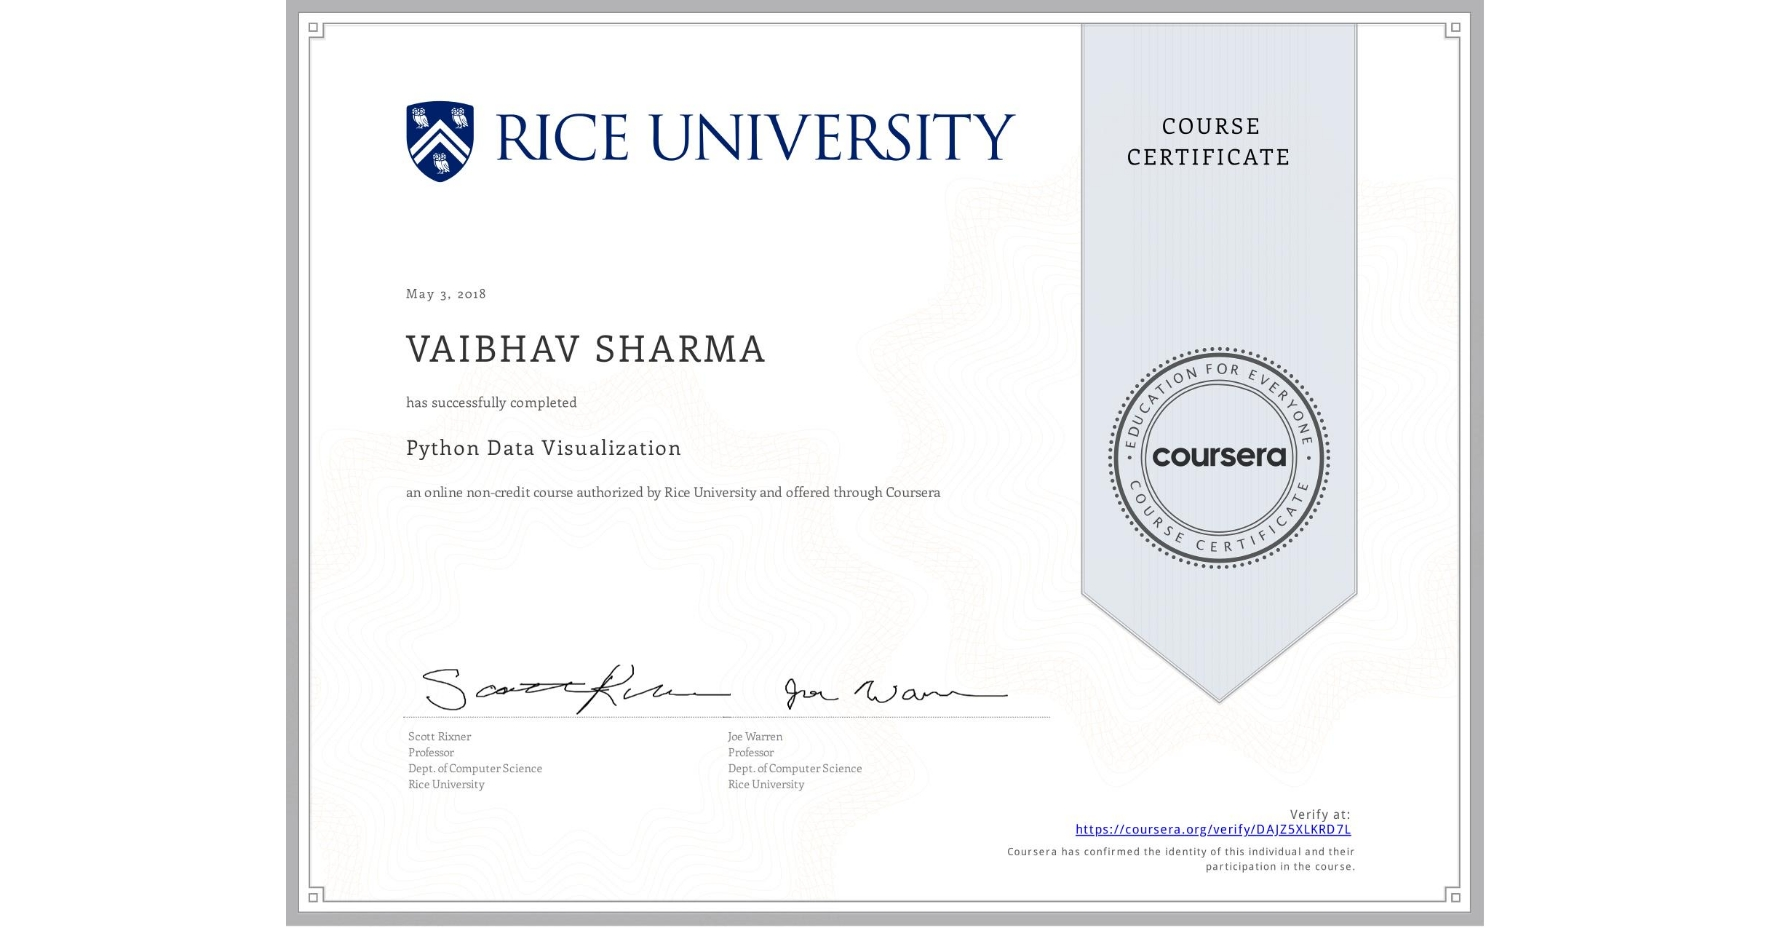 View certificate for VAIBHAV SHARMA, Python Data Visualization, an online non-credit course authorized by Rice University and offered through Coursera